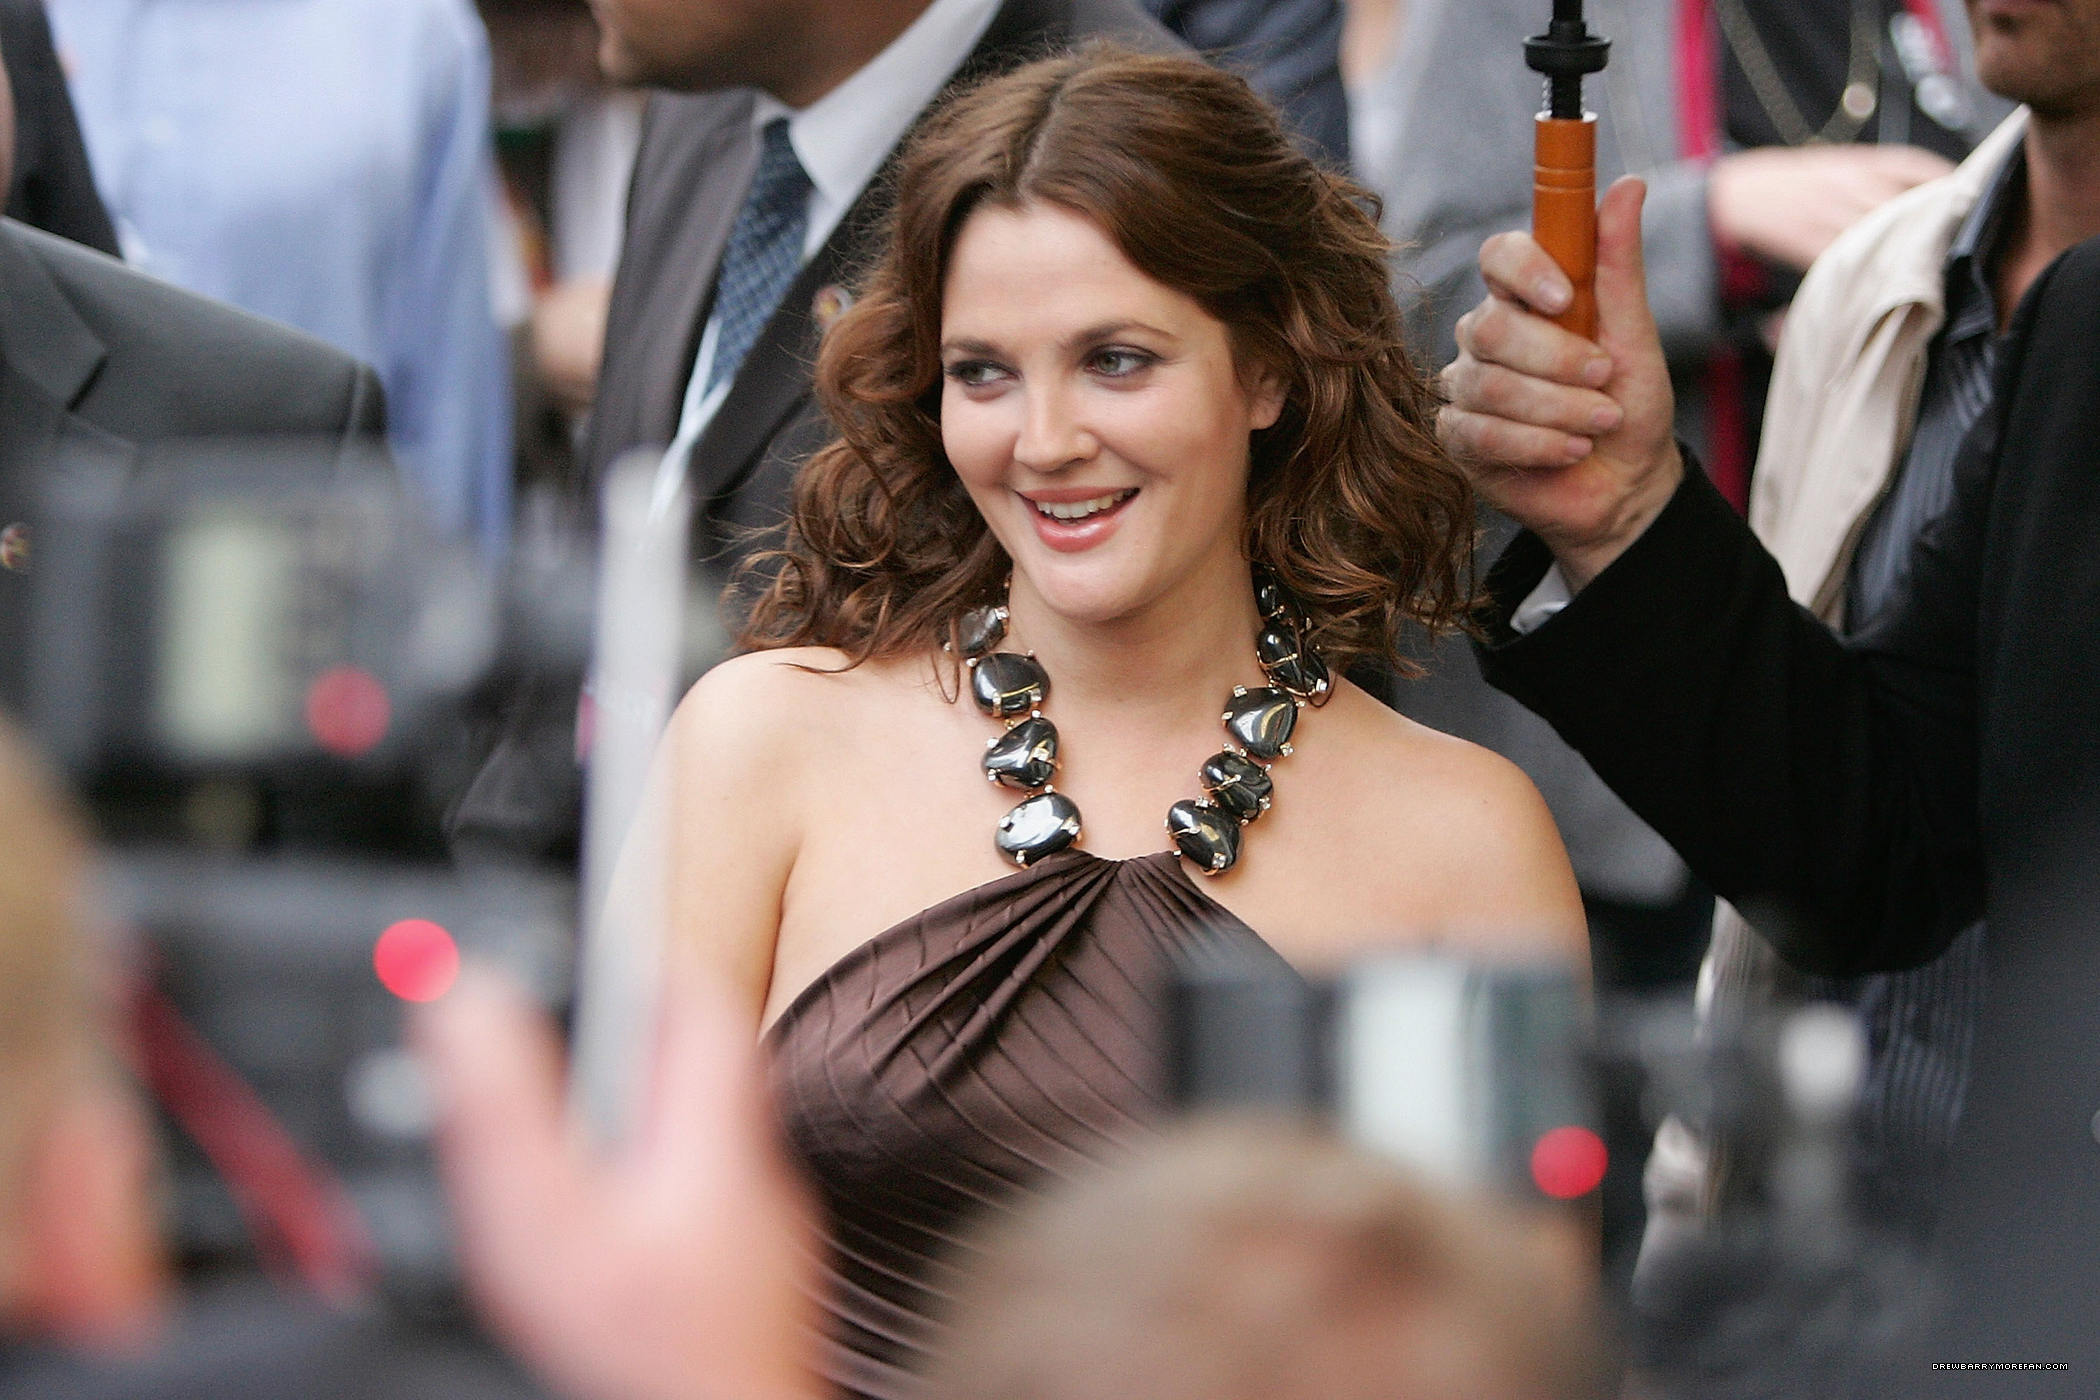 Photos: 2005 Red Carpet Appearances and Public Events + Talk Show Stills